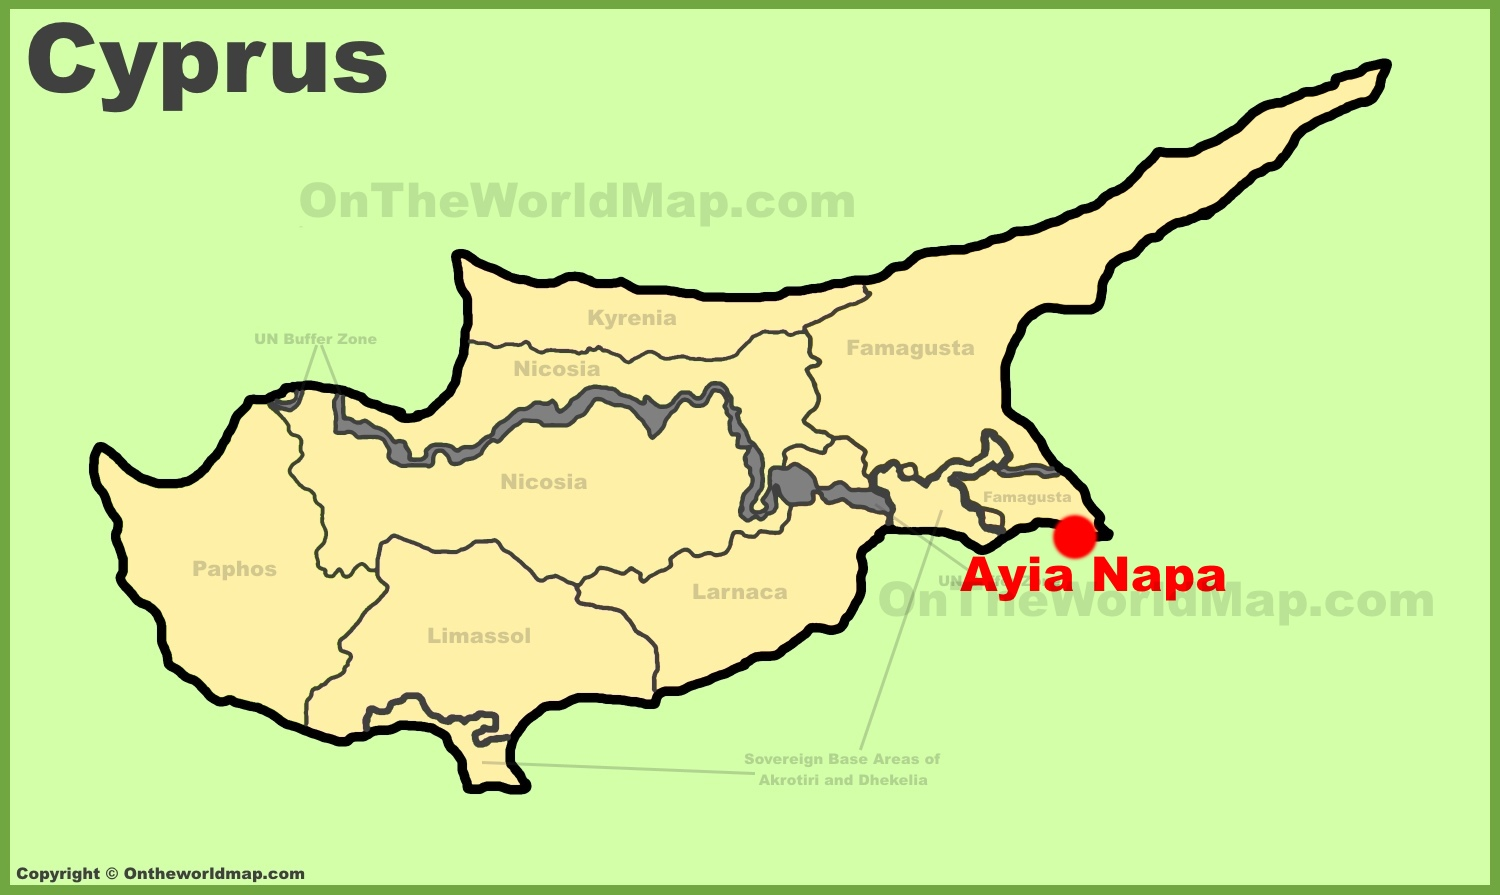 Ayia Napa Location On The Cyprus Map - Cyprus map